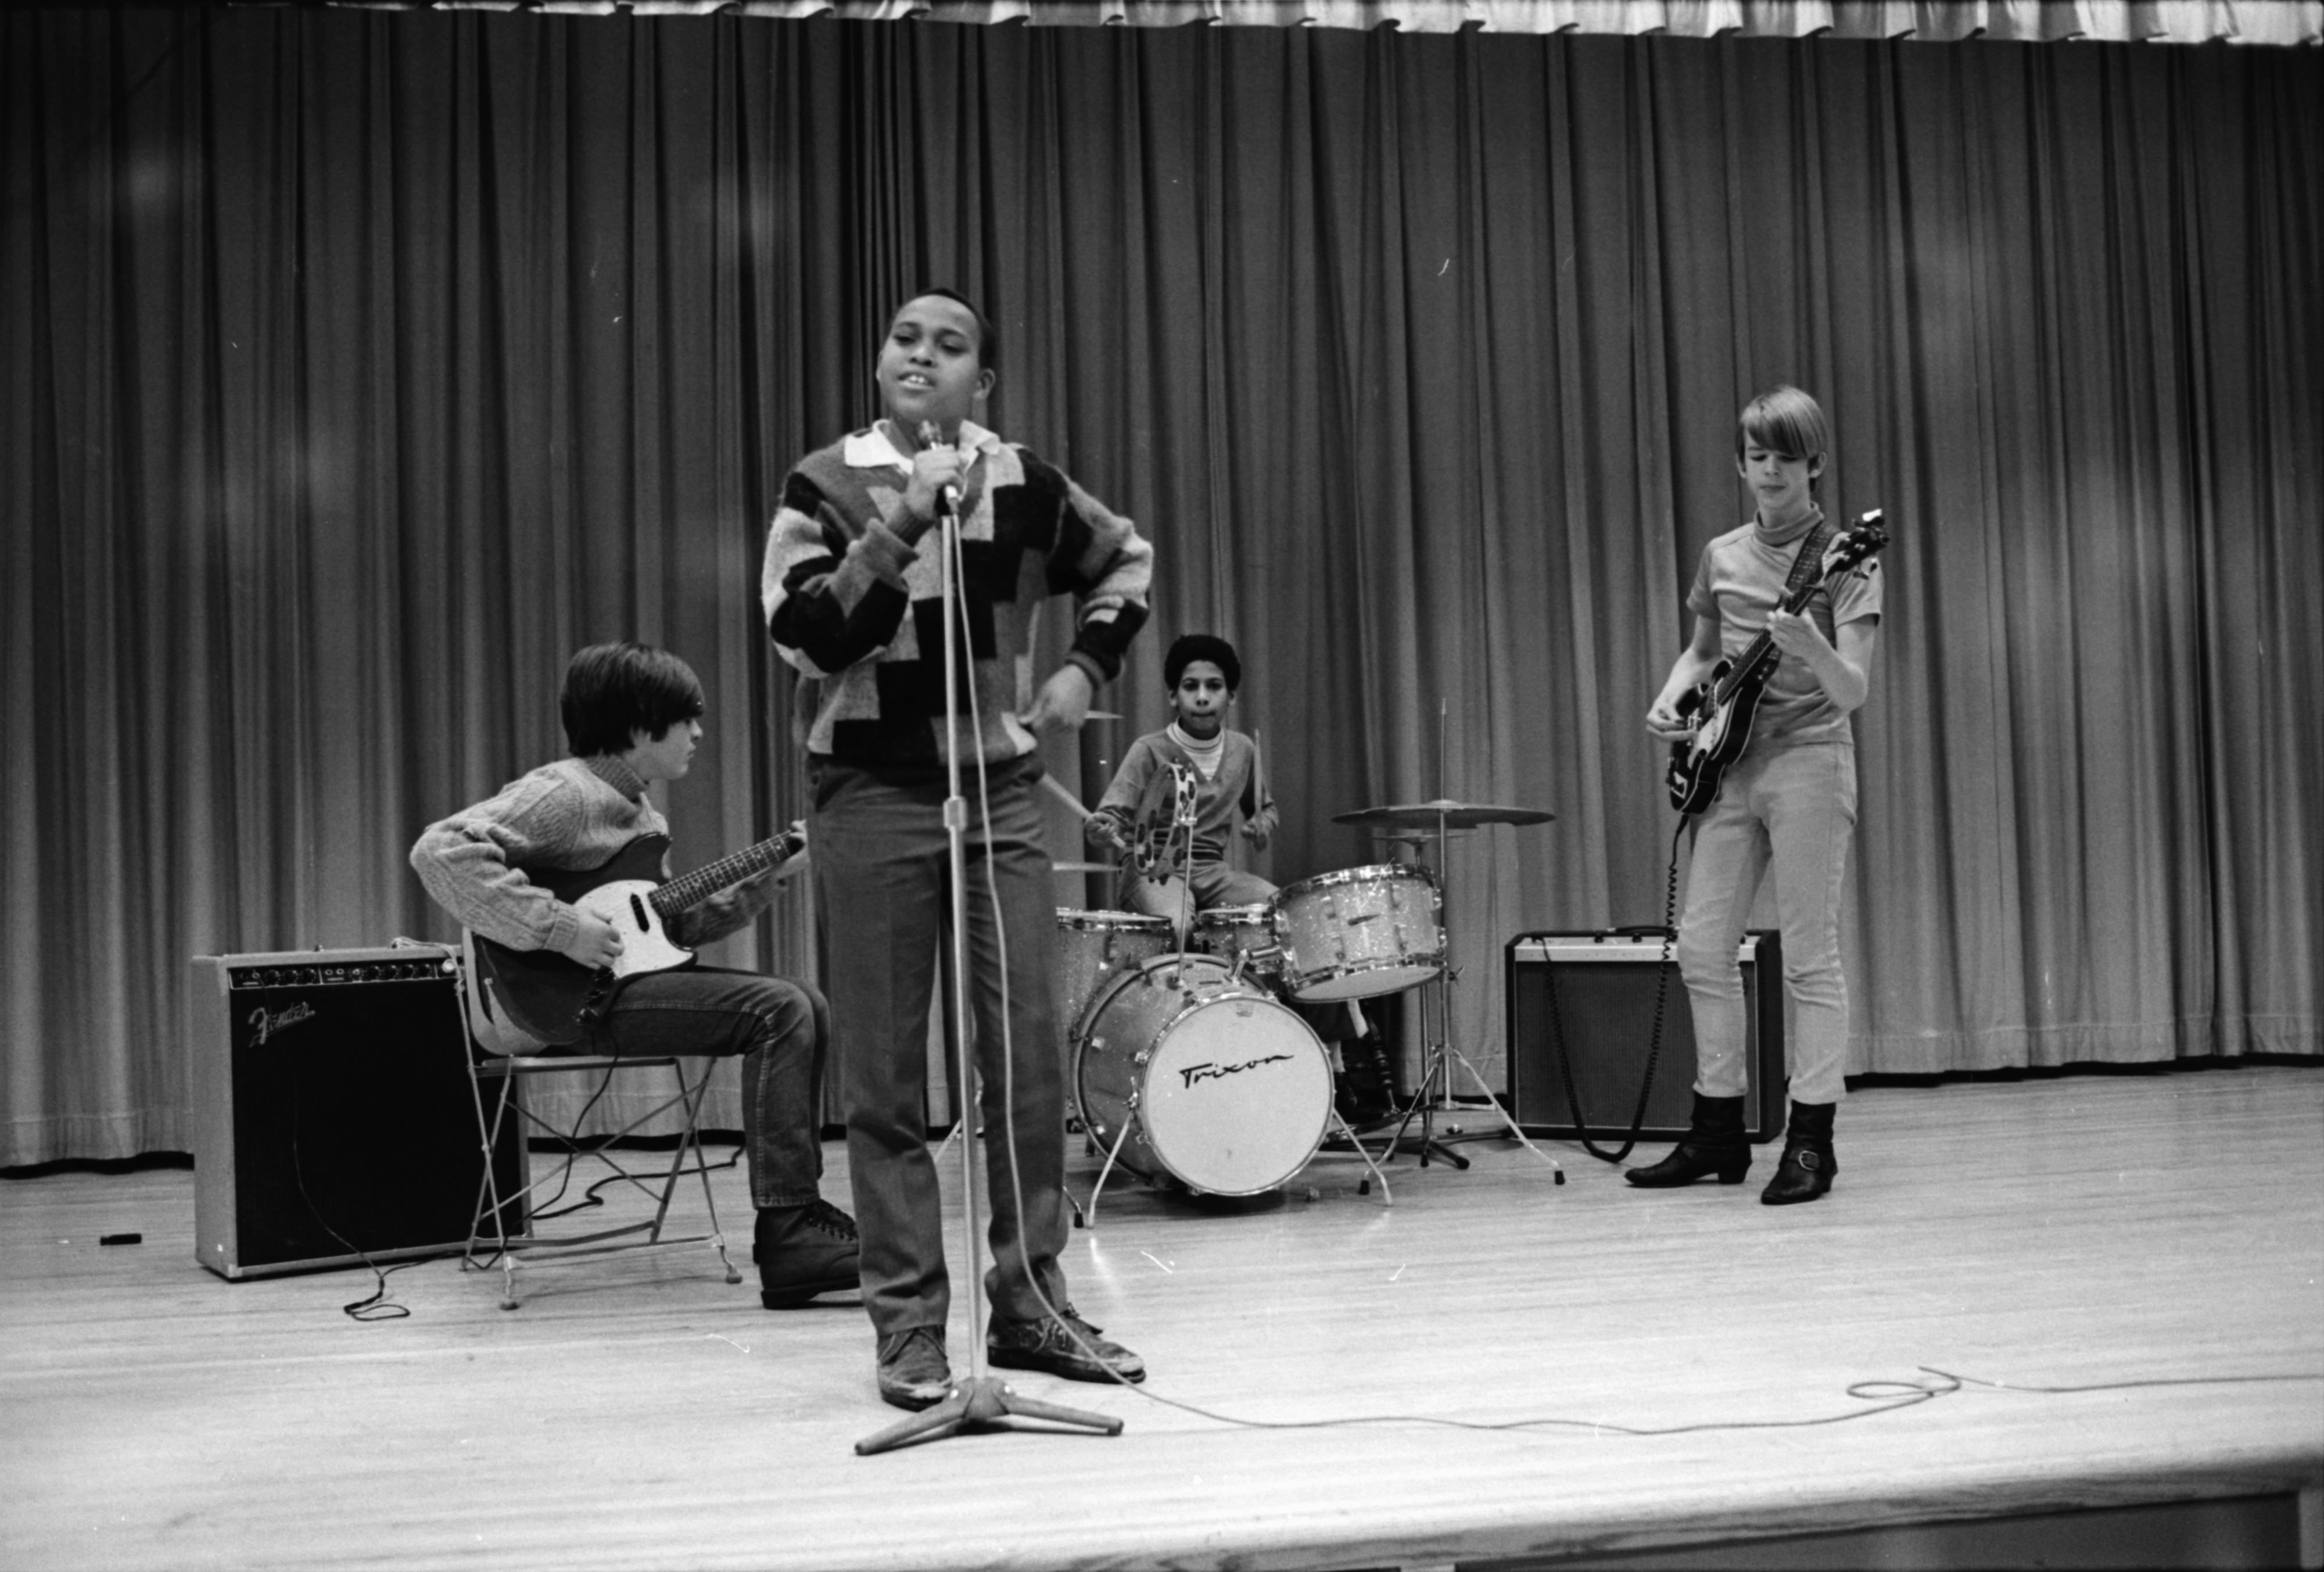 Mike Shaw, Matt Becker, Haywood Hall, and Tim Connor perform at Forsythe Junior High School's Talent Show, January 1969 image